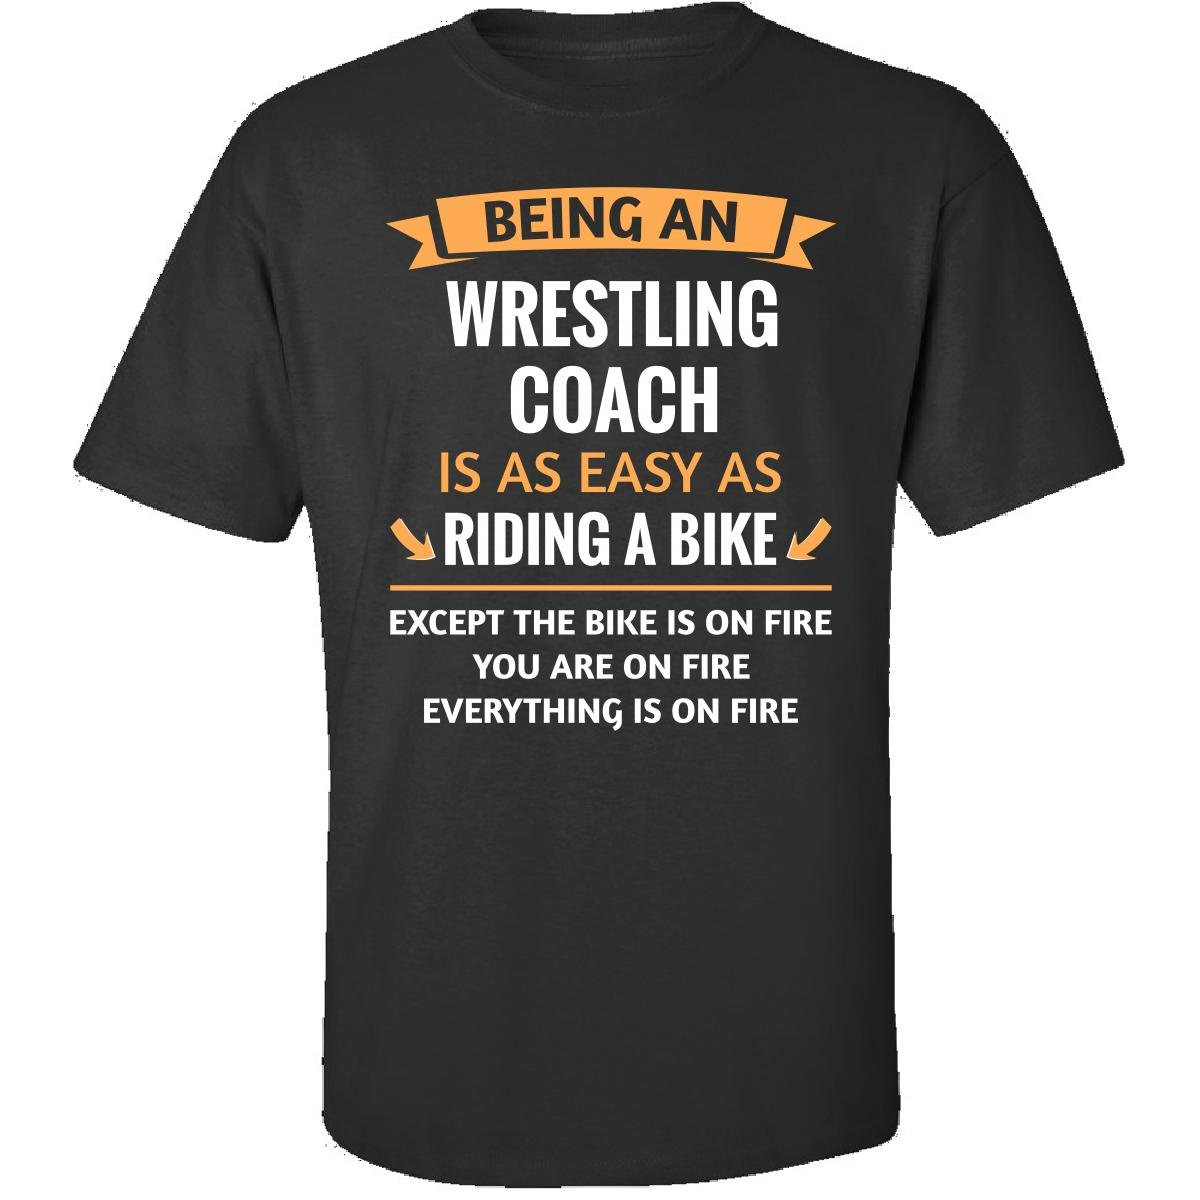 This Gift Rocks ! Being A Wrestling Coach Is Easy - Adult Shirt 5XL Black